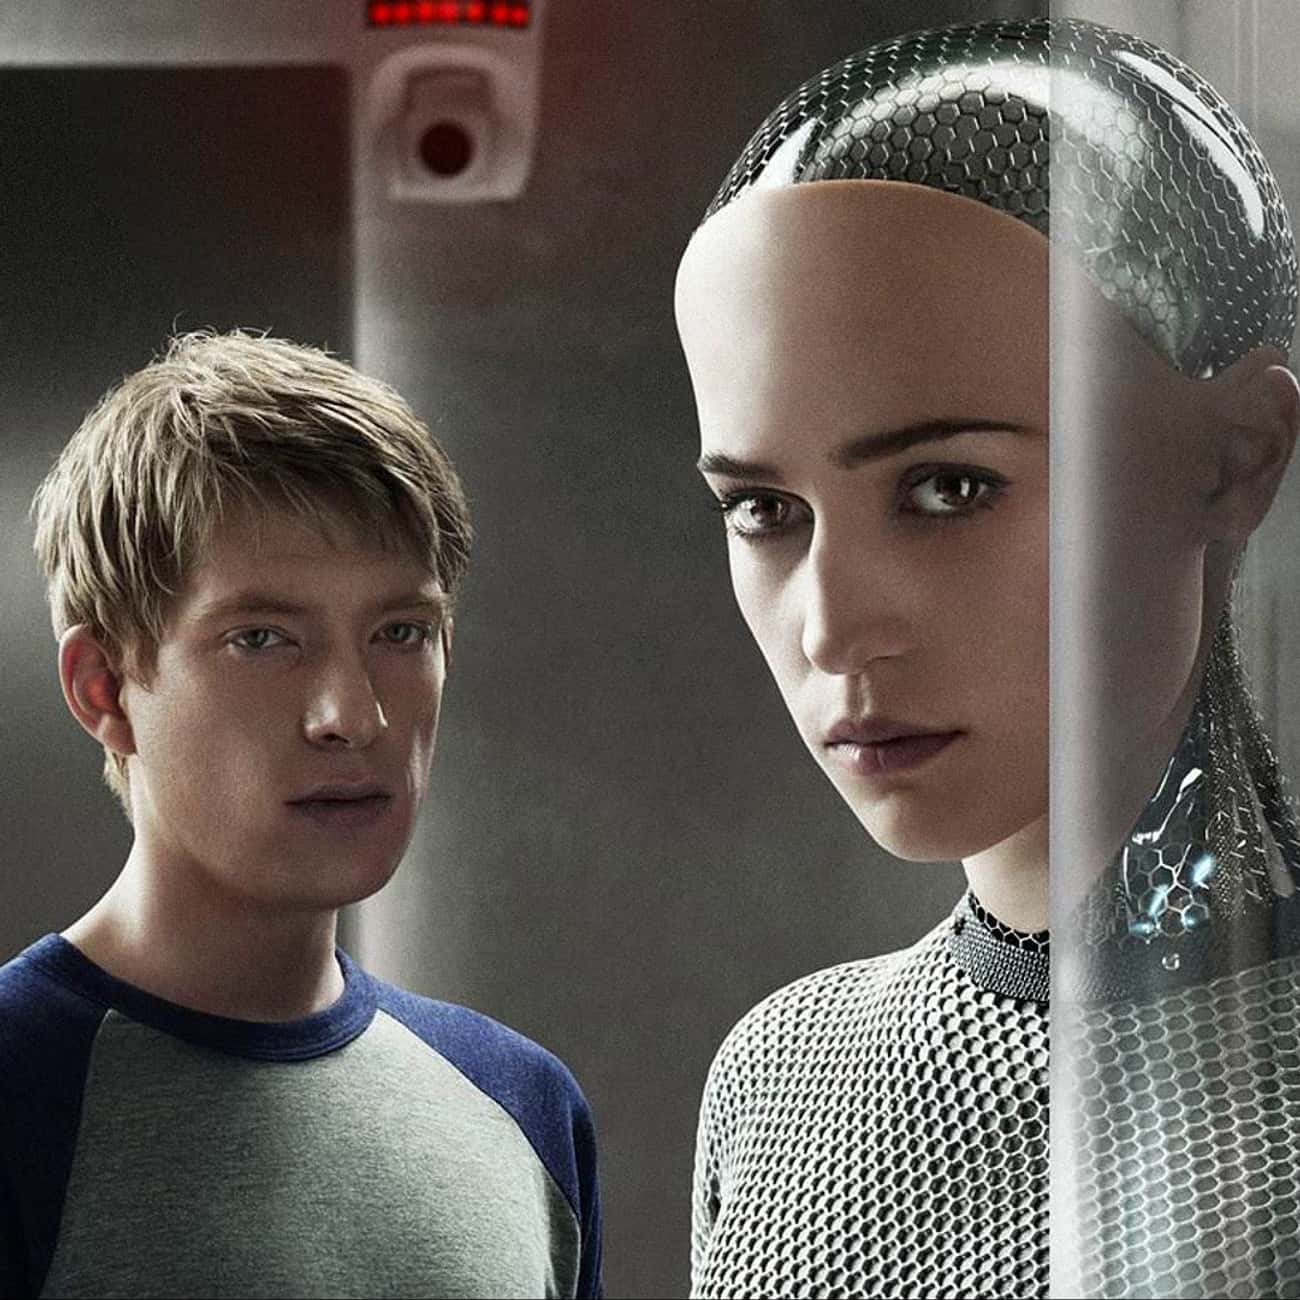 Do You Want to Be My Friend? is listed (or ranked) 1 on the list Ex Machina Movie Quotes